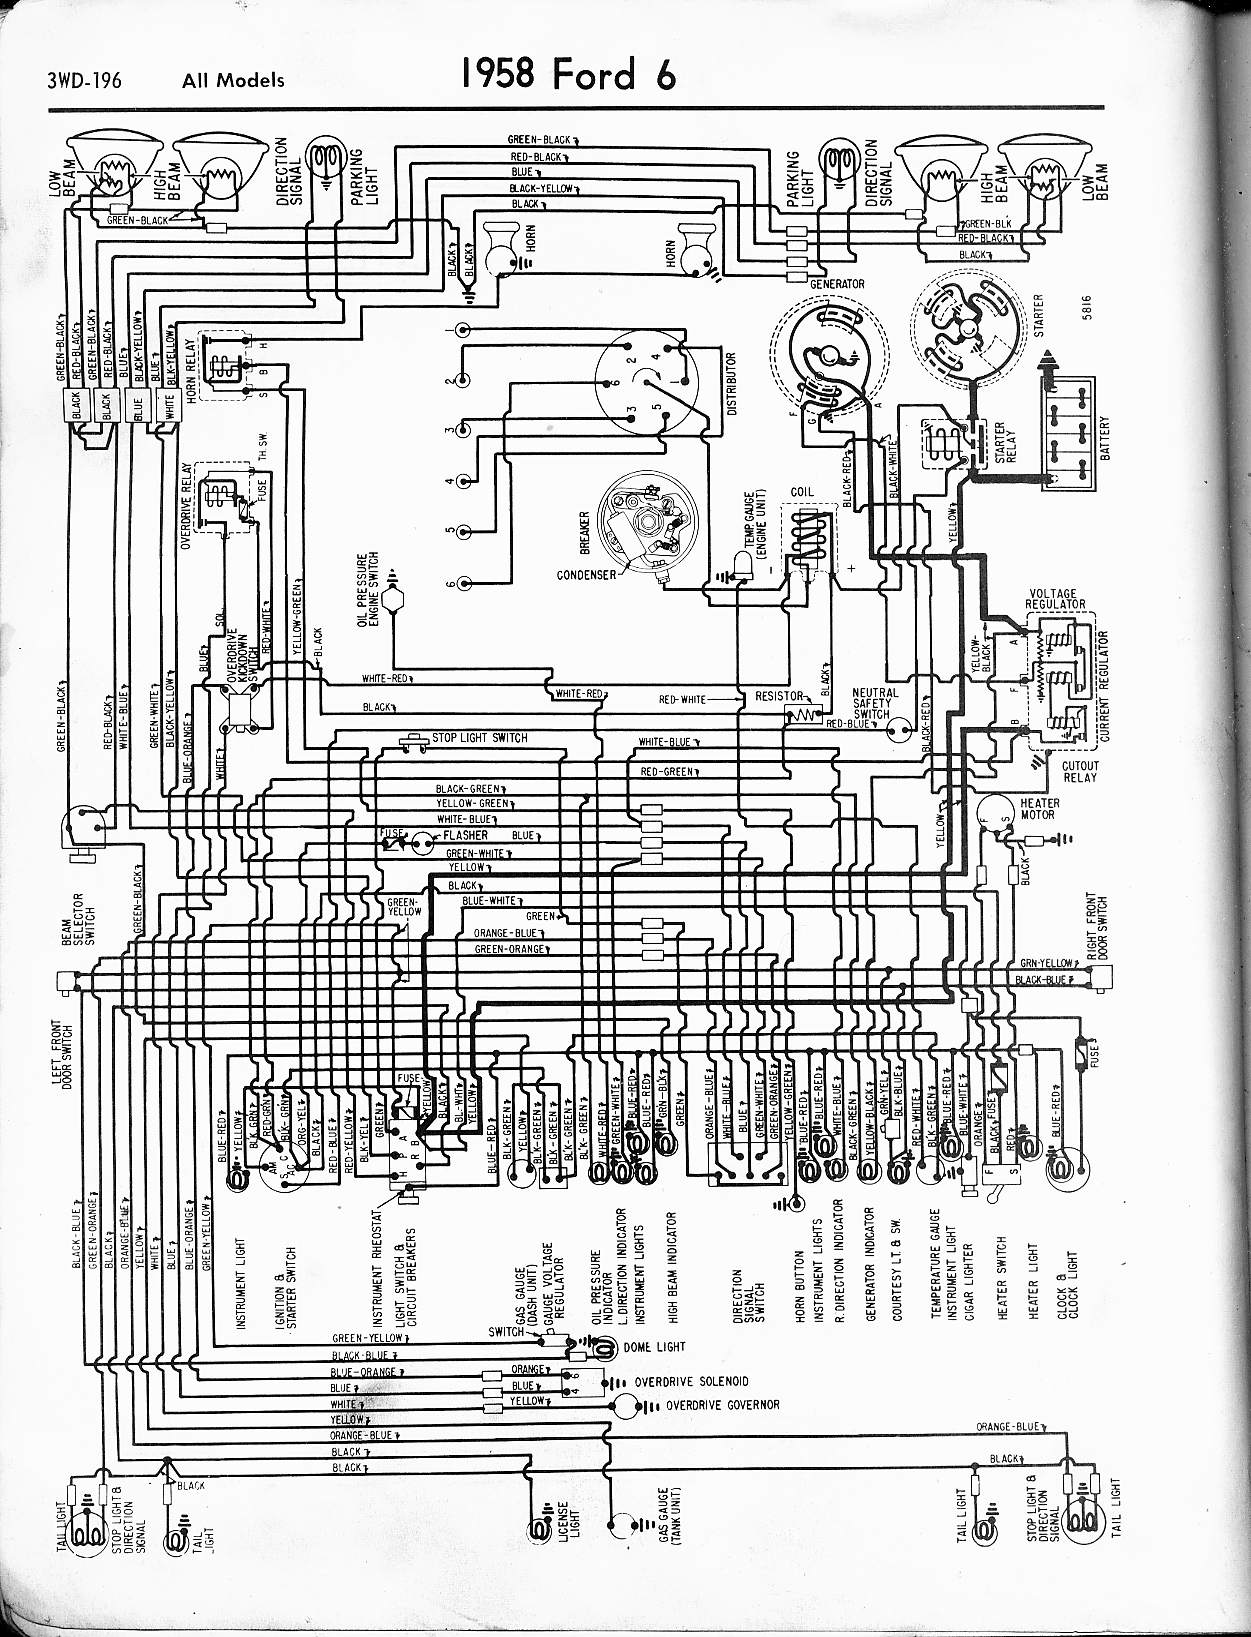 MWire5765 196 1958 ford car wiring diagram 1958 wirning diagrams 2000 Ford Headlight Switch Wiring Diagram at webbmarketing.co